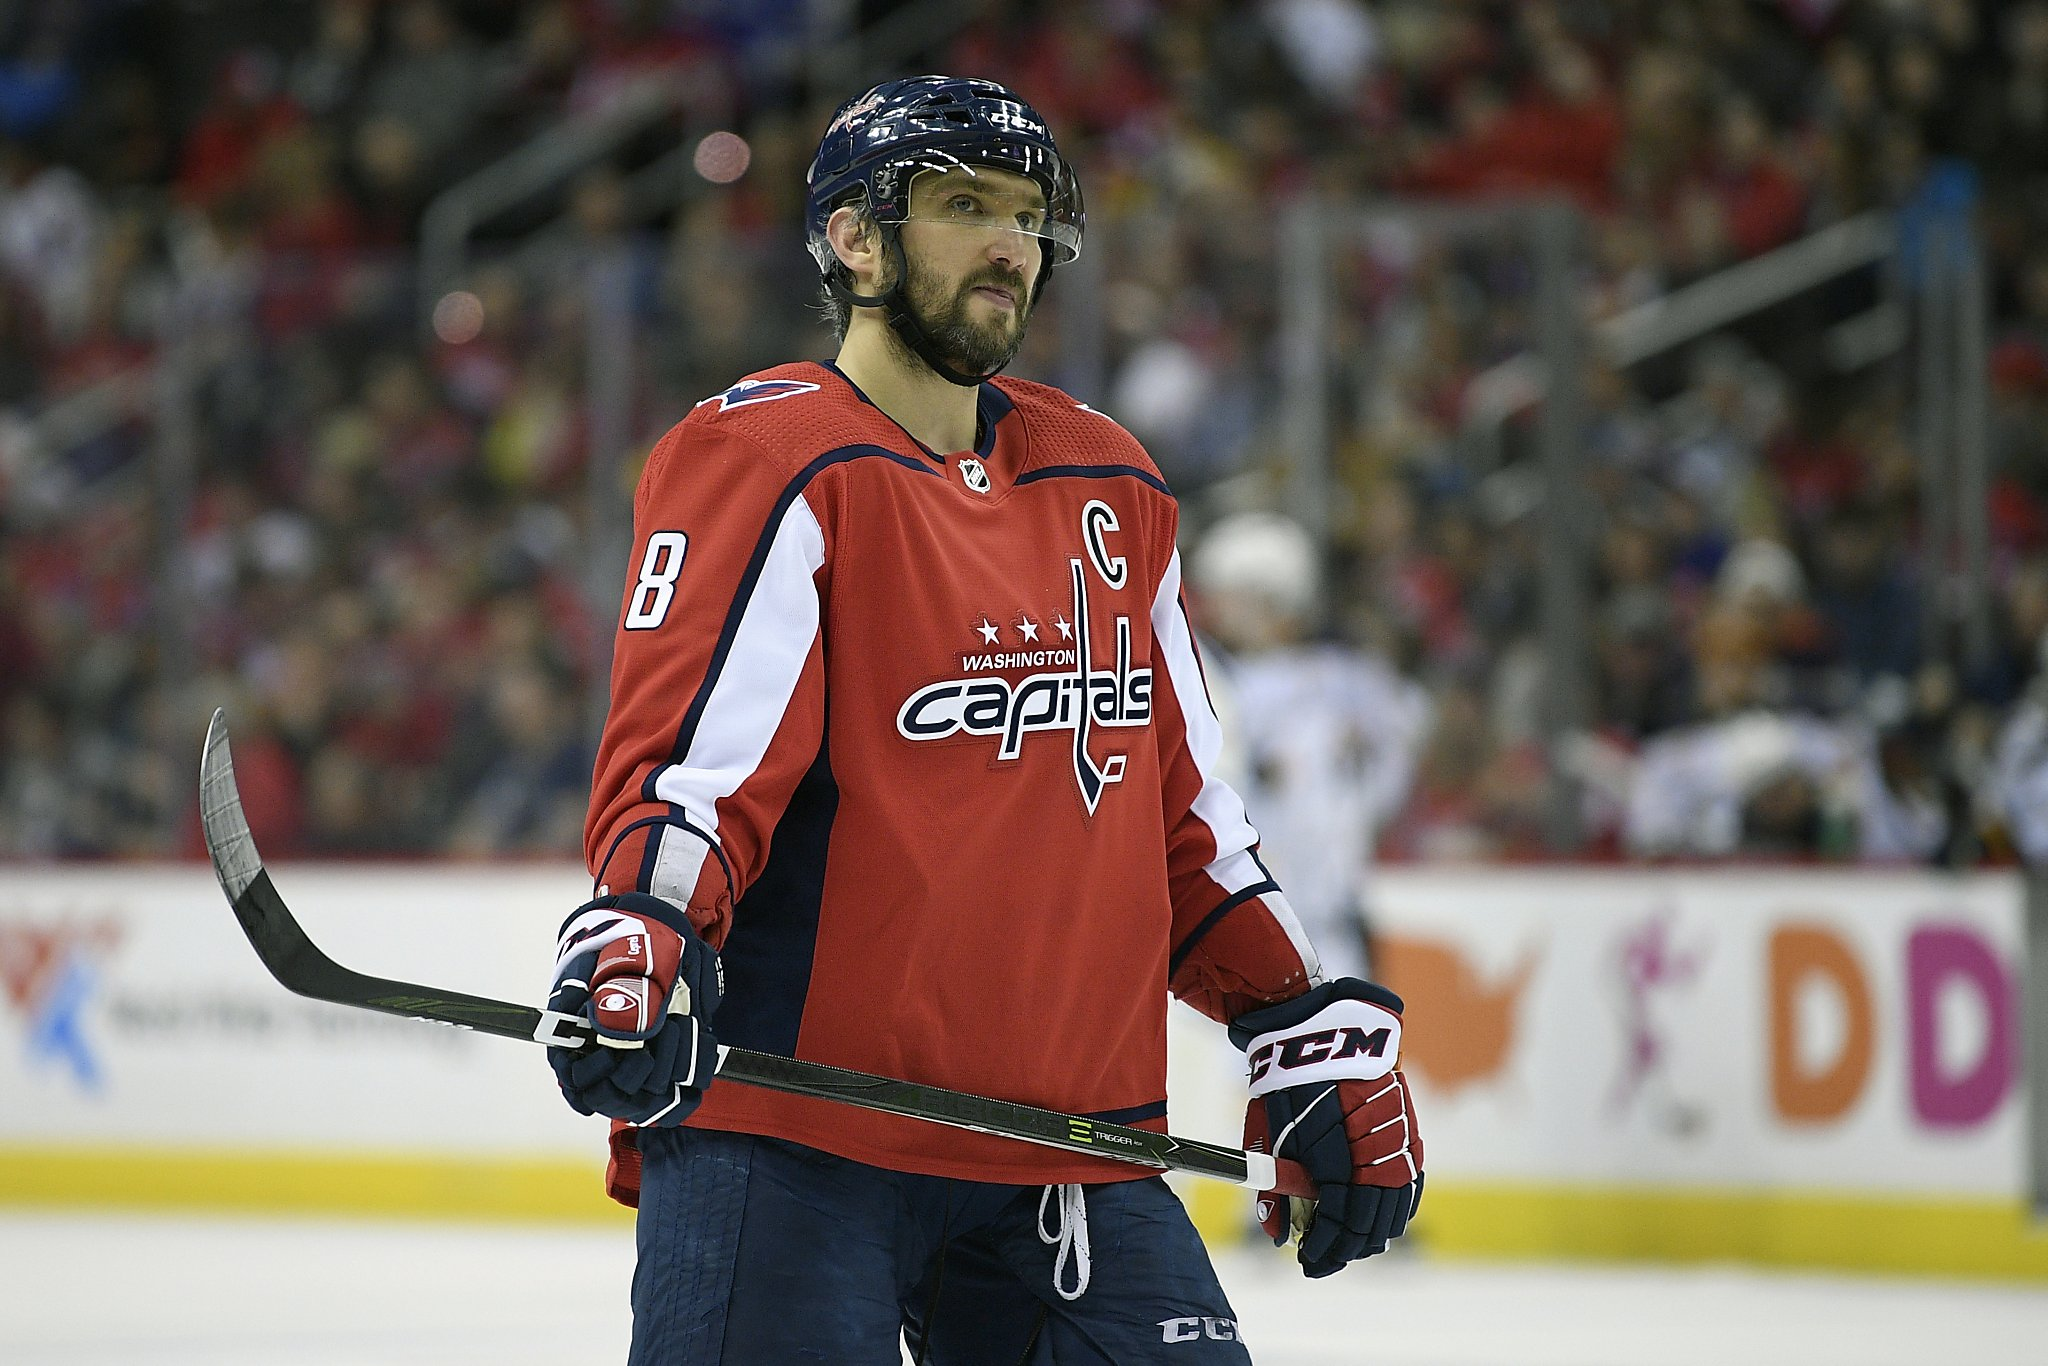 ad110dd2b Ovechkin to skip San Jose All-Star Game: Will others follow suit? -  SFChronicle.com